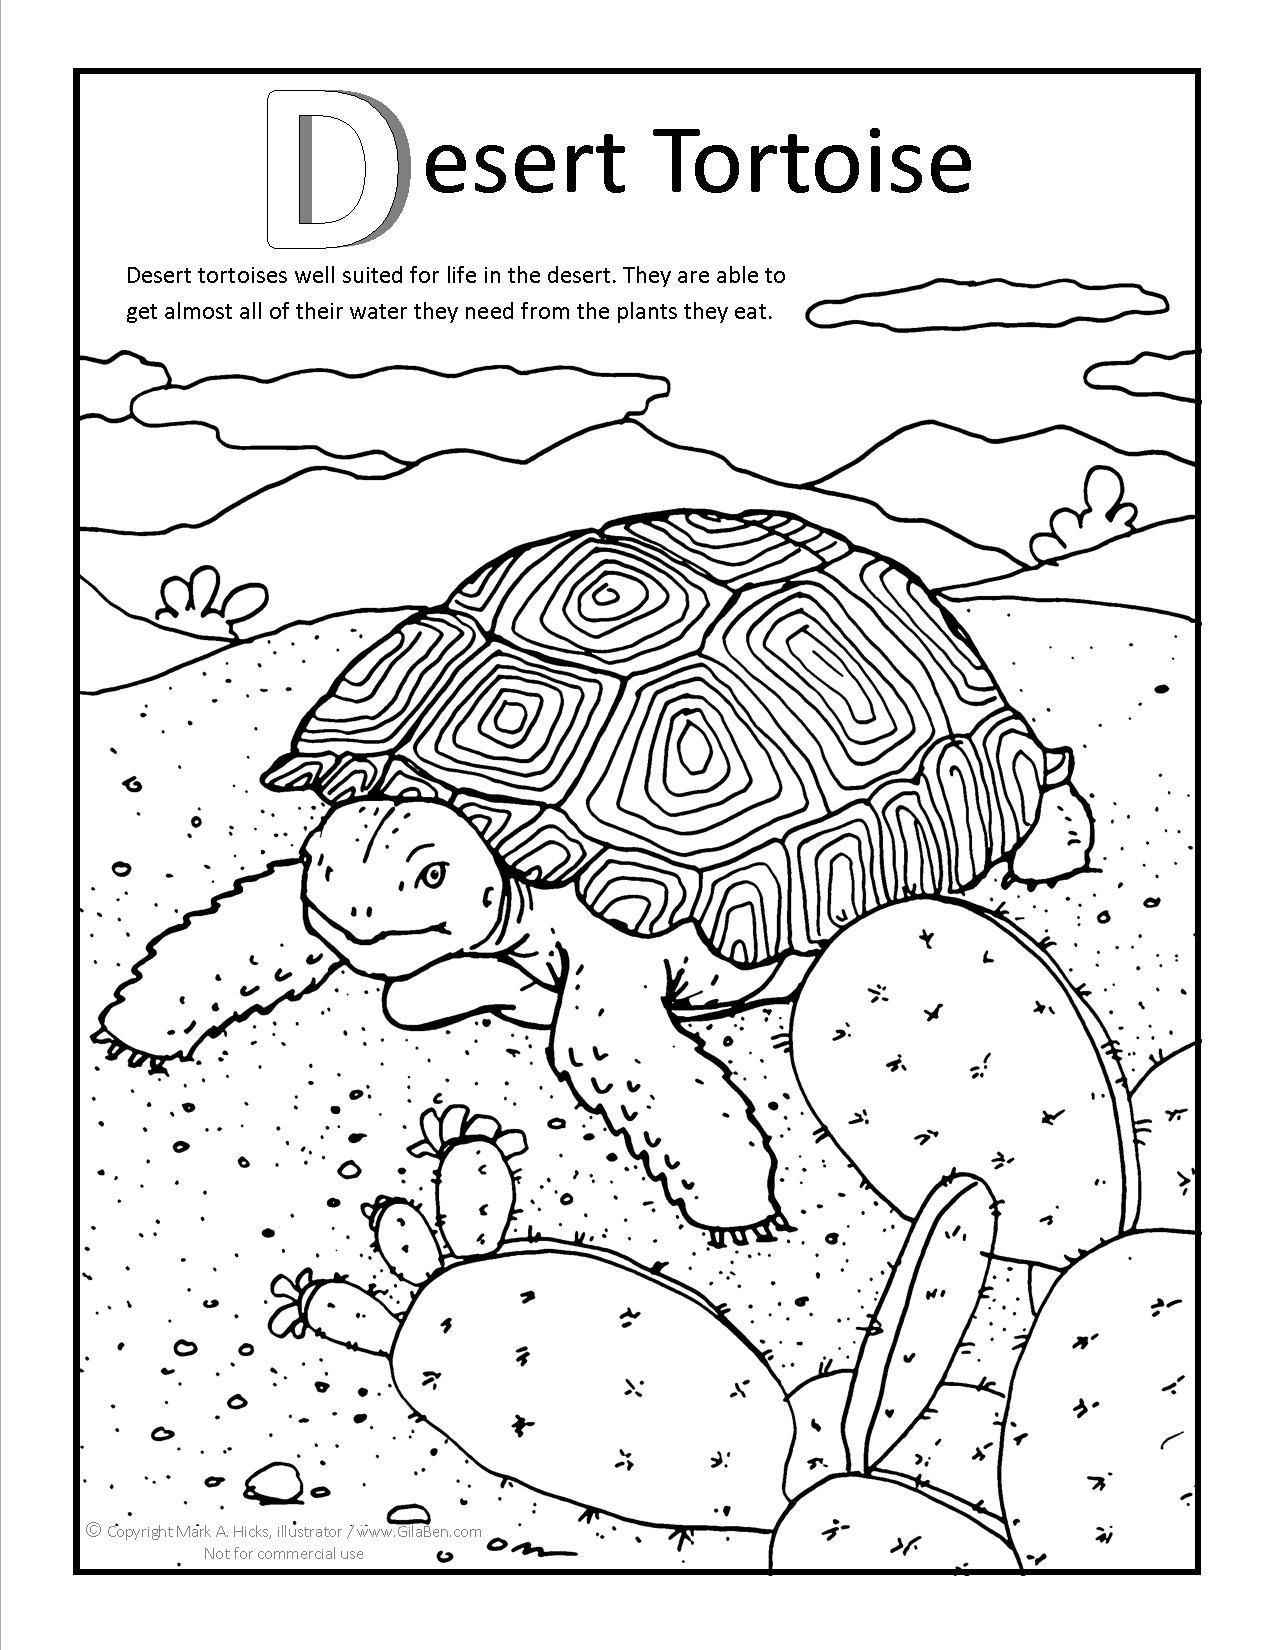 Desert Tortoise Coloring Page At Gilaben Com Desert Tortoise Desert Animals Coloring Pages